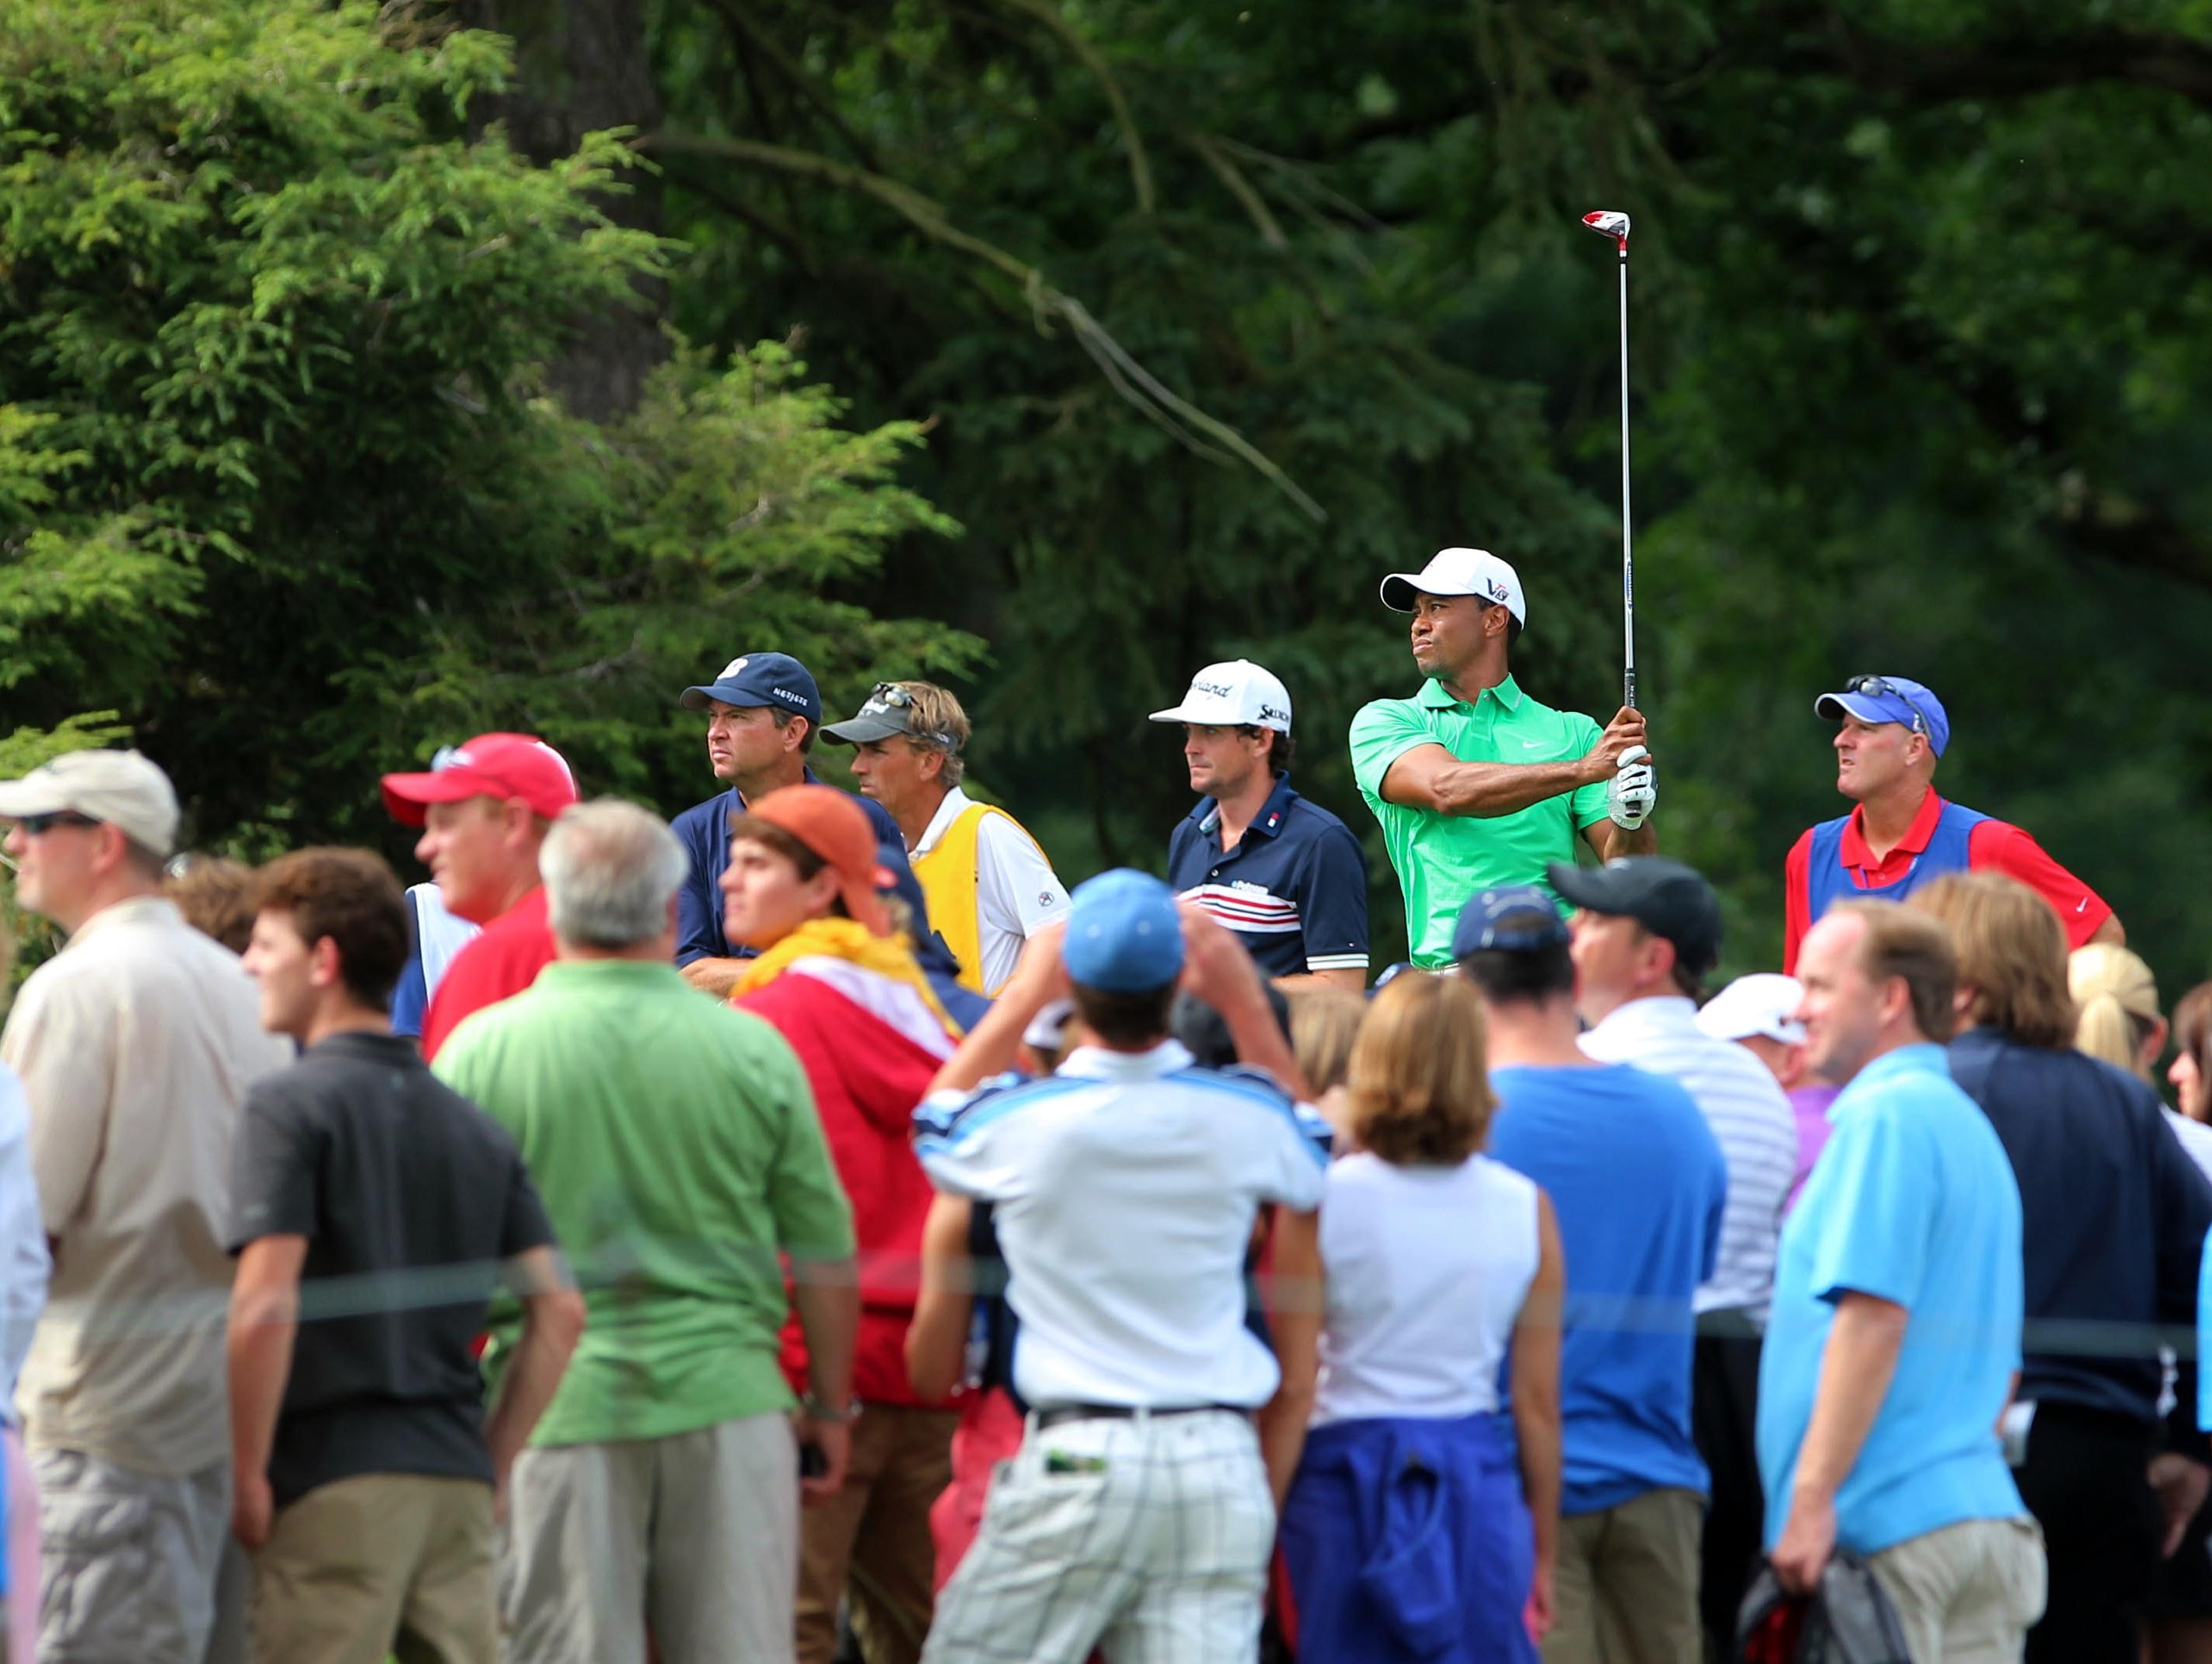 Tiger Woods tees off on the 9th hole.